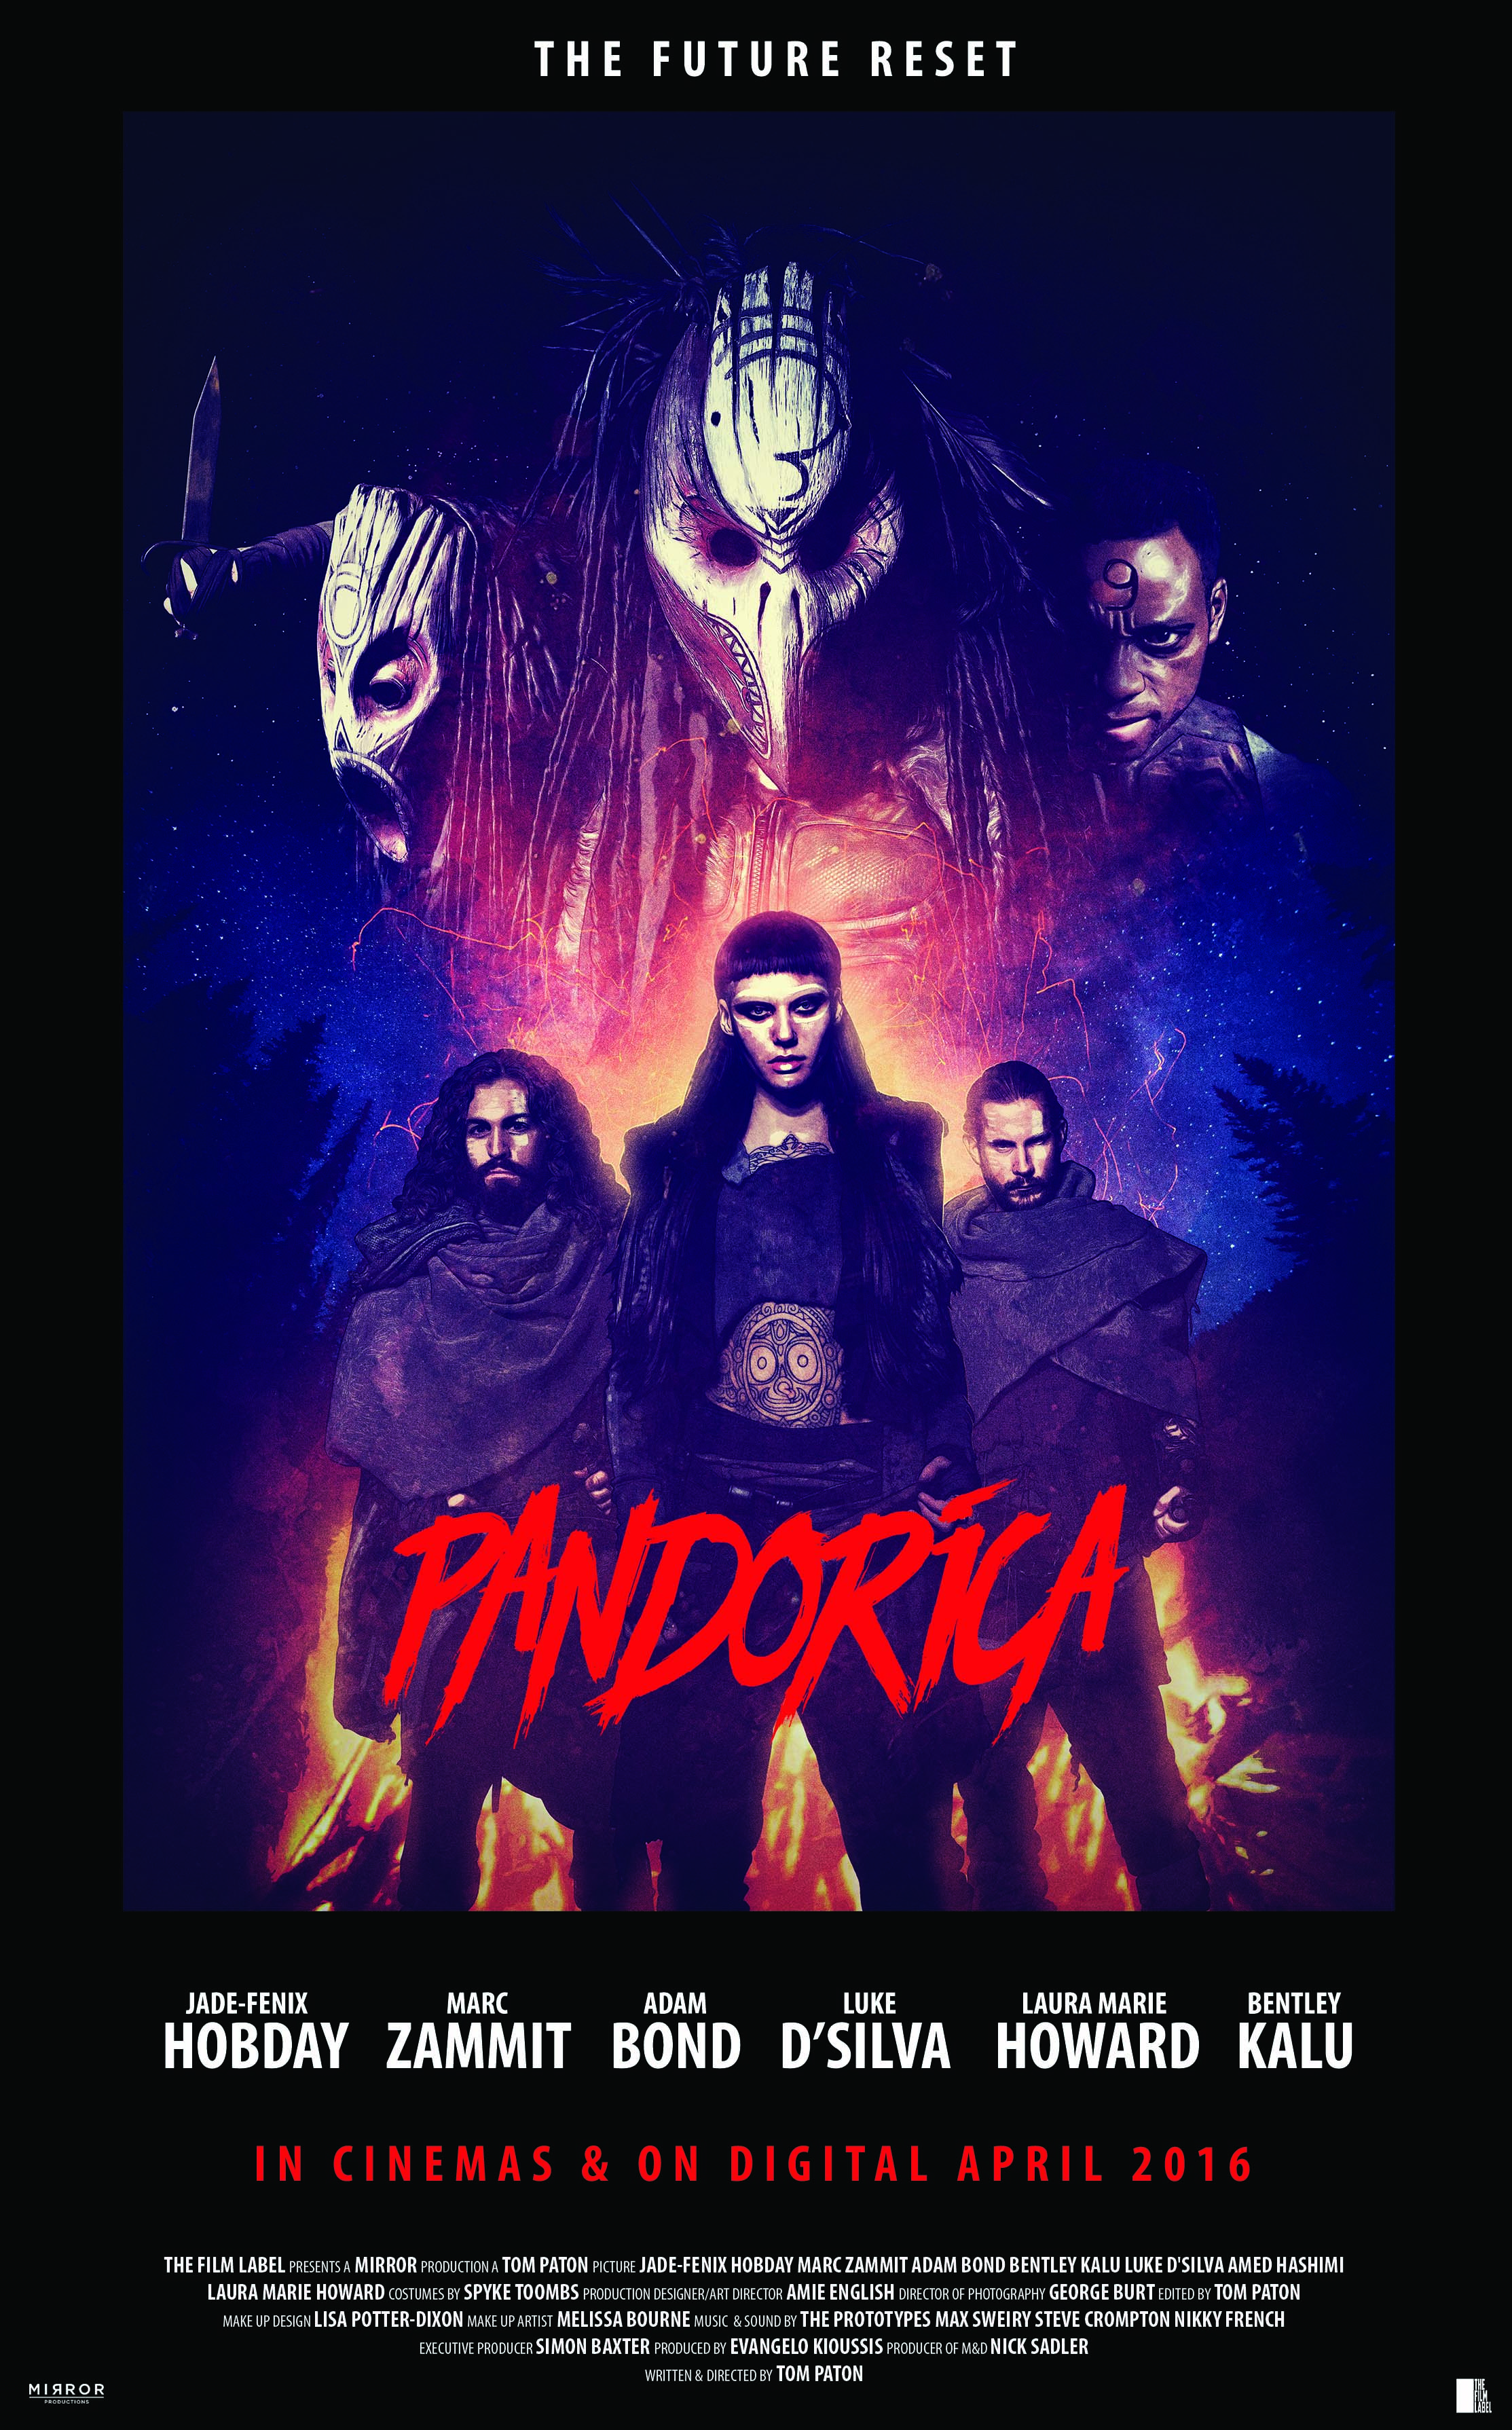 Pandorica film review: end of the world is meh